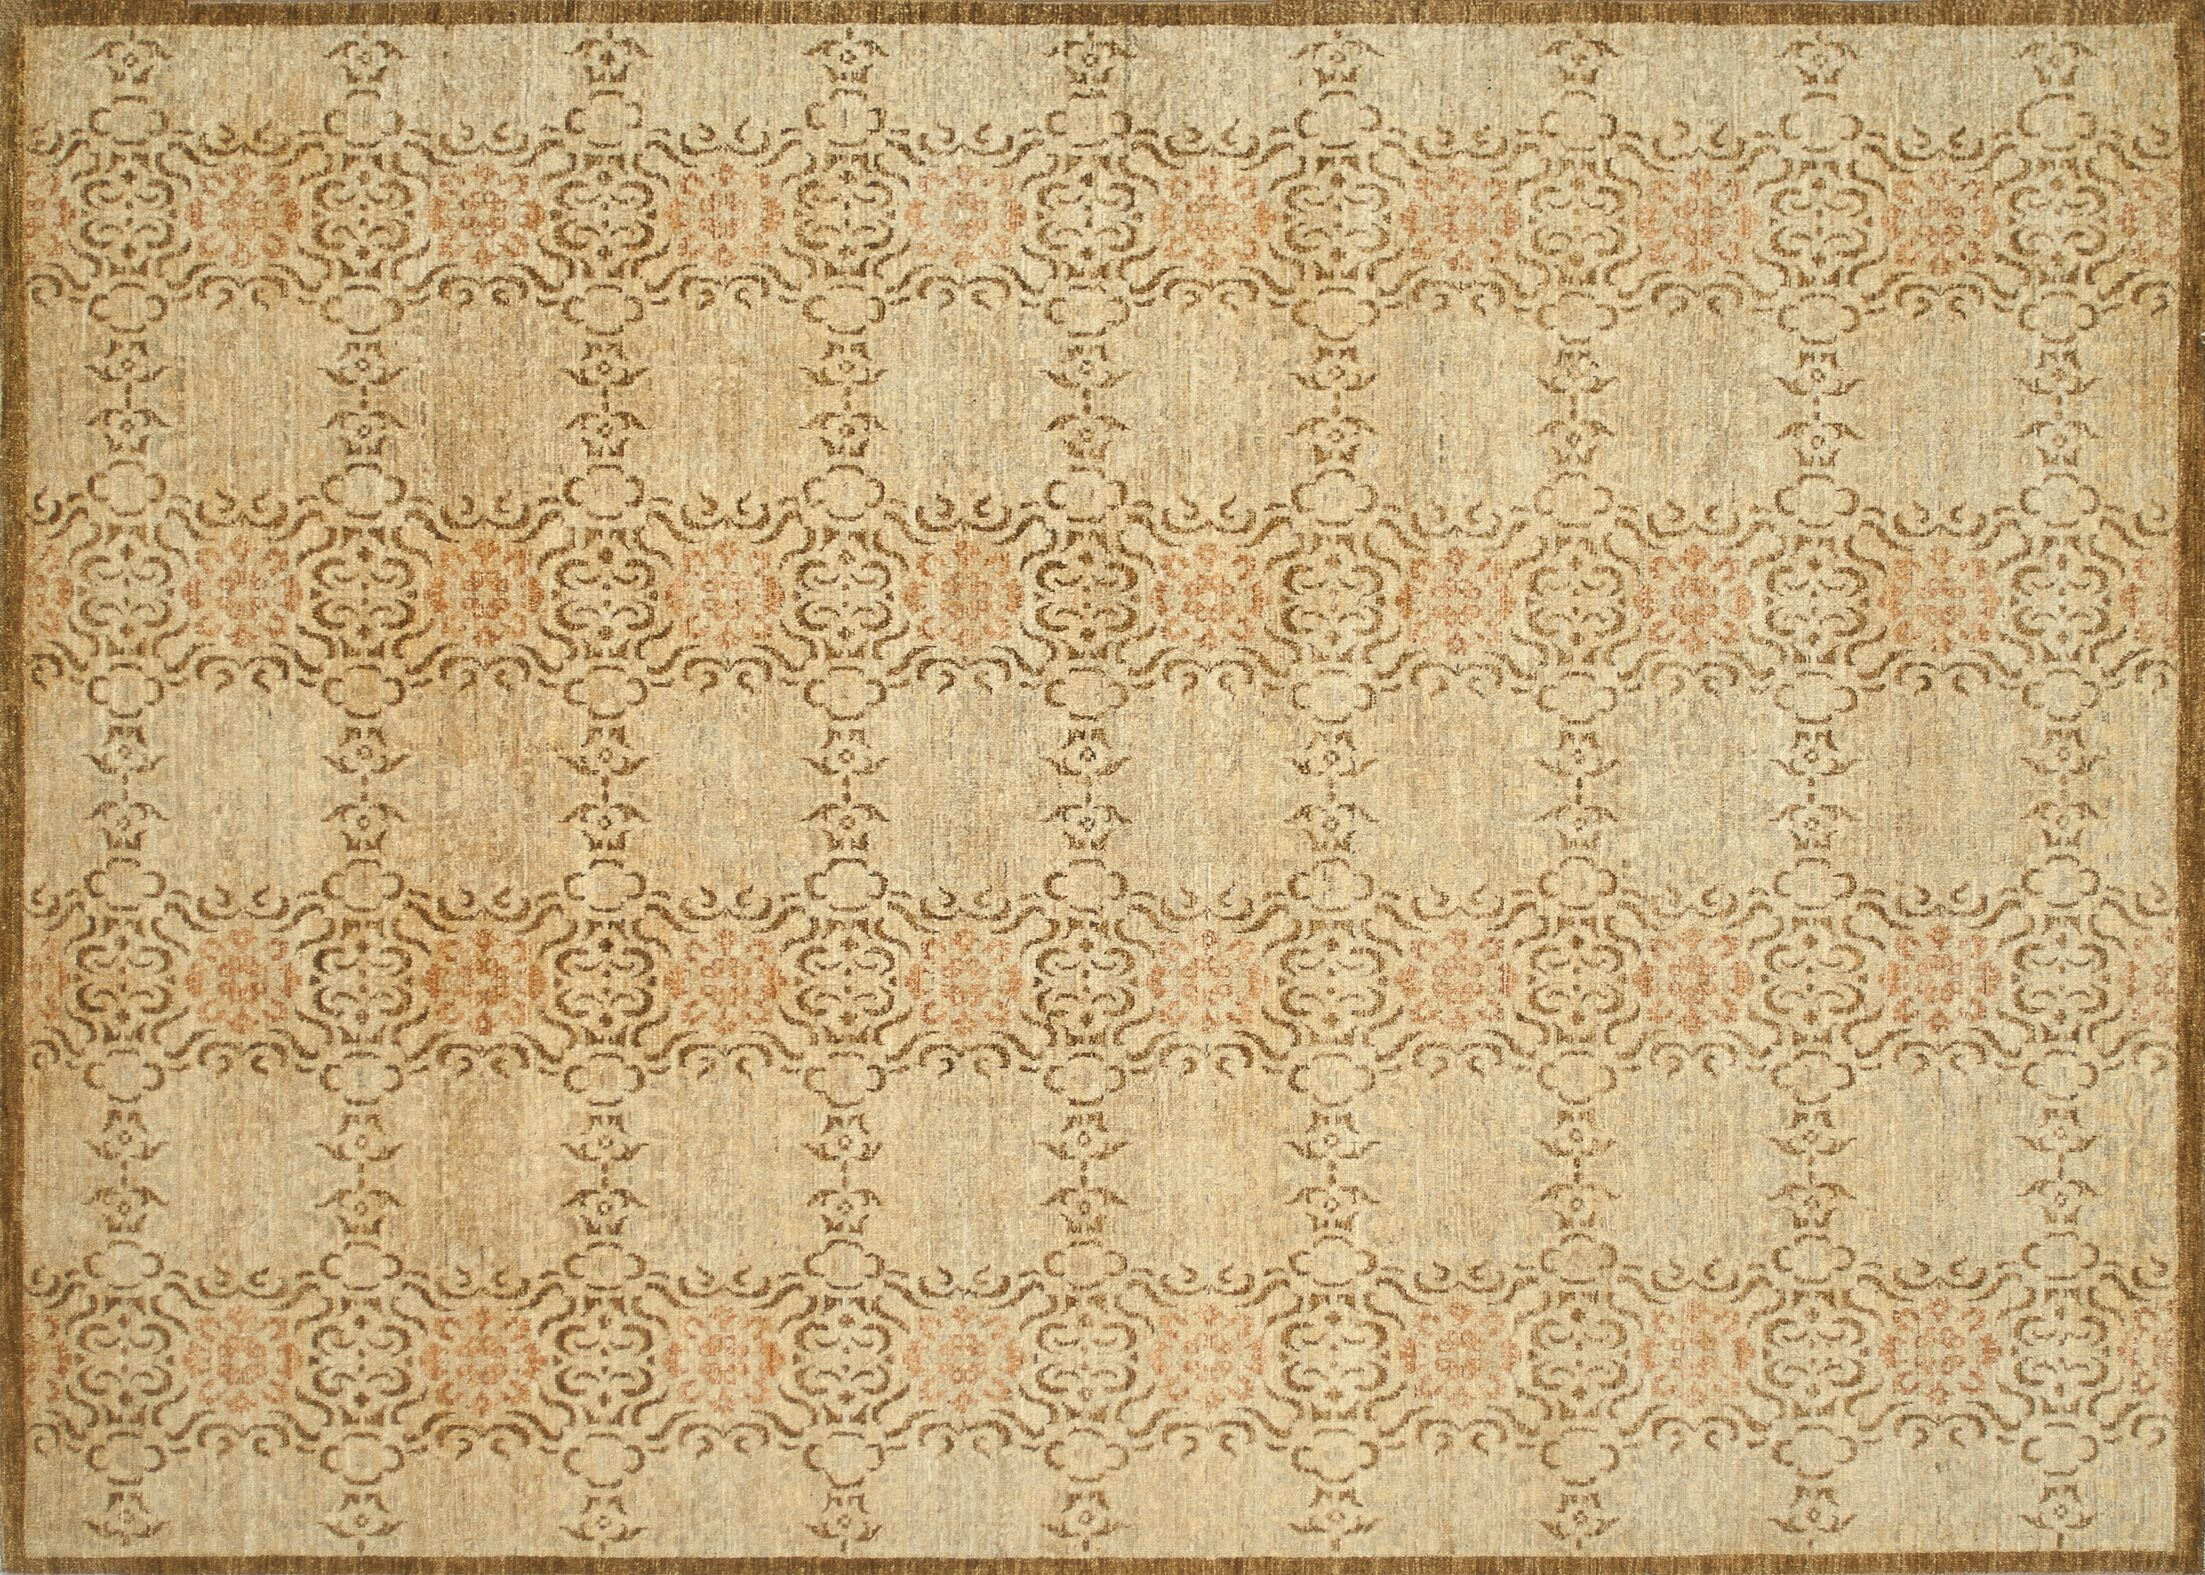 Kennith Hand-Knotted Beige Area Rug Rug Size: Rectangle 12' x 15'